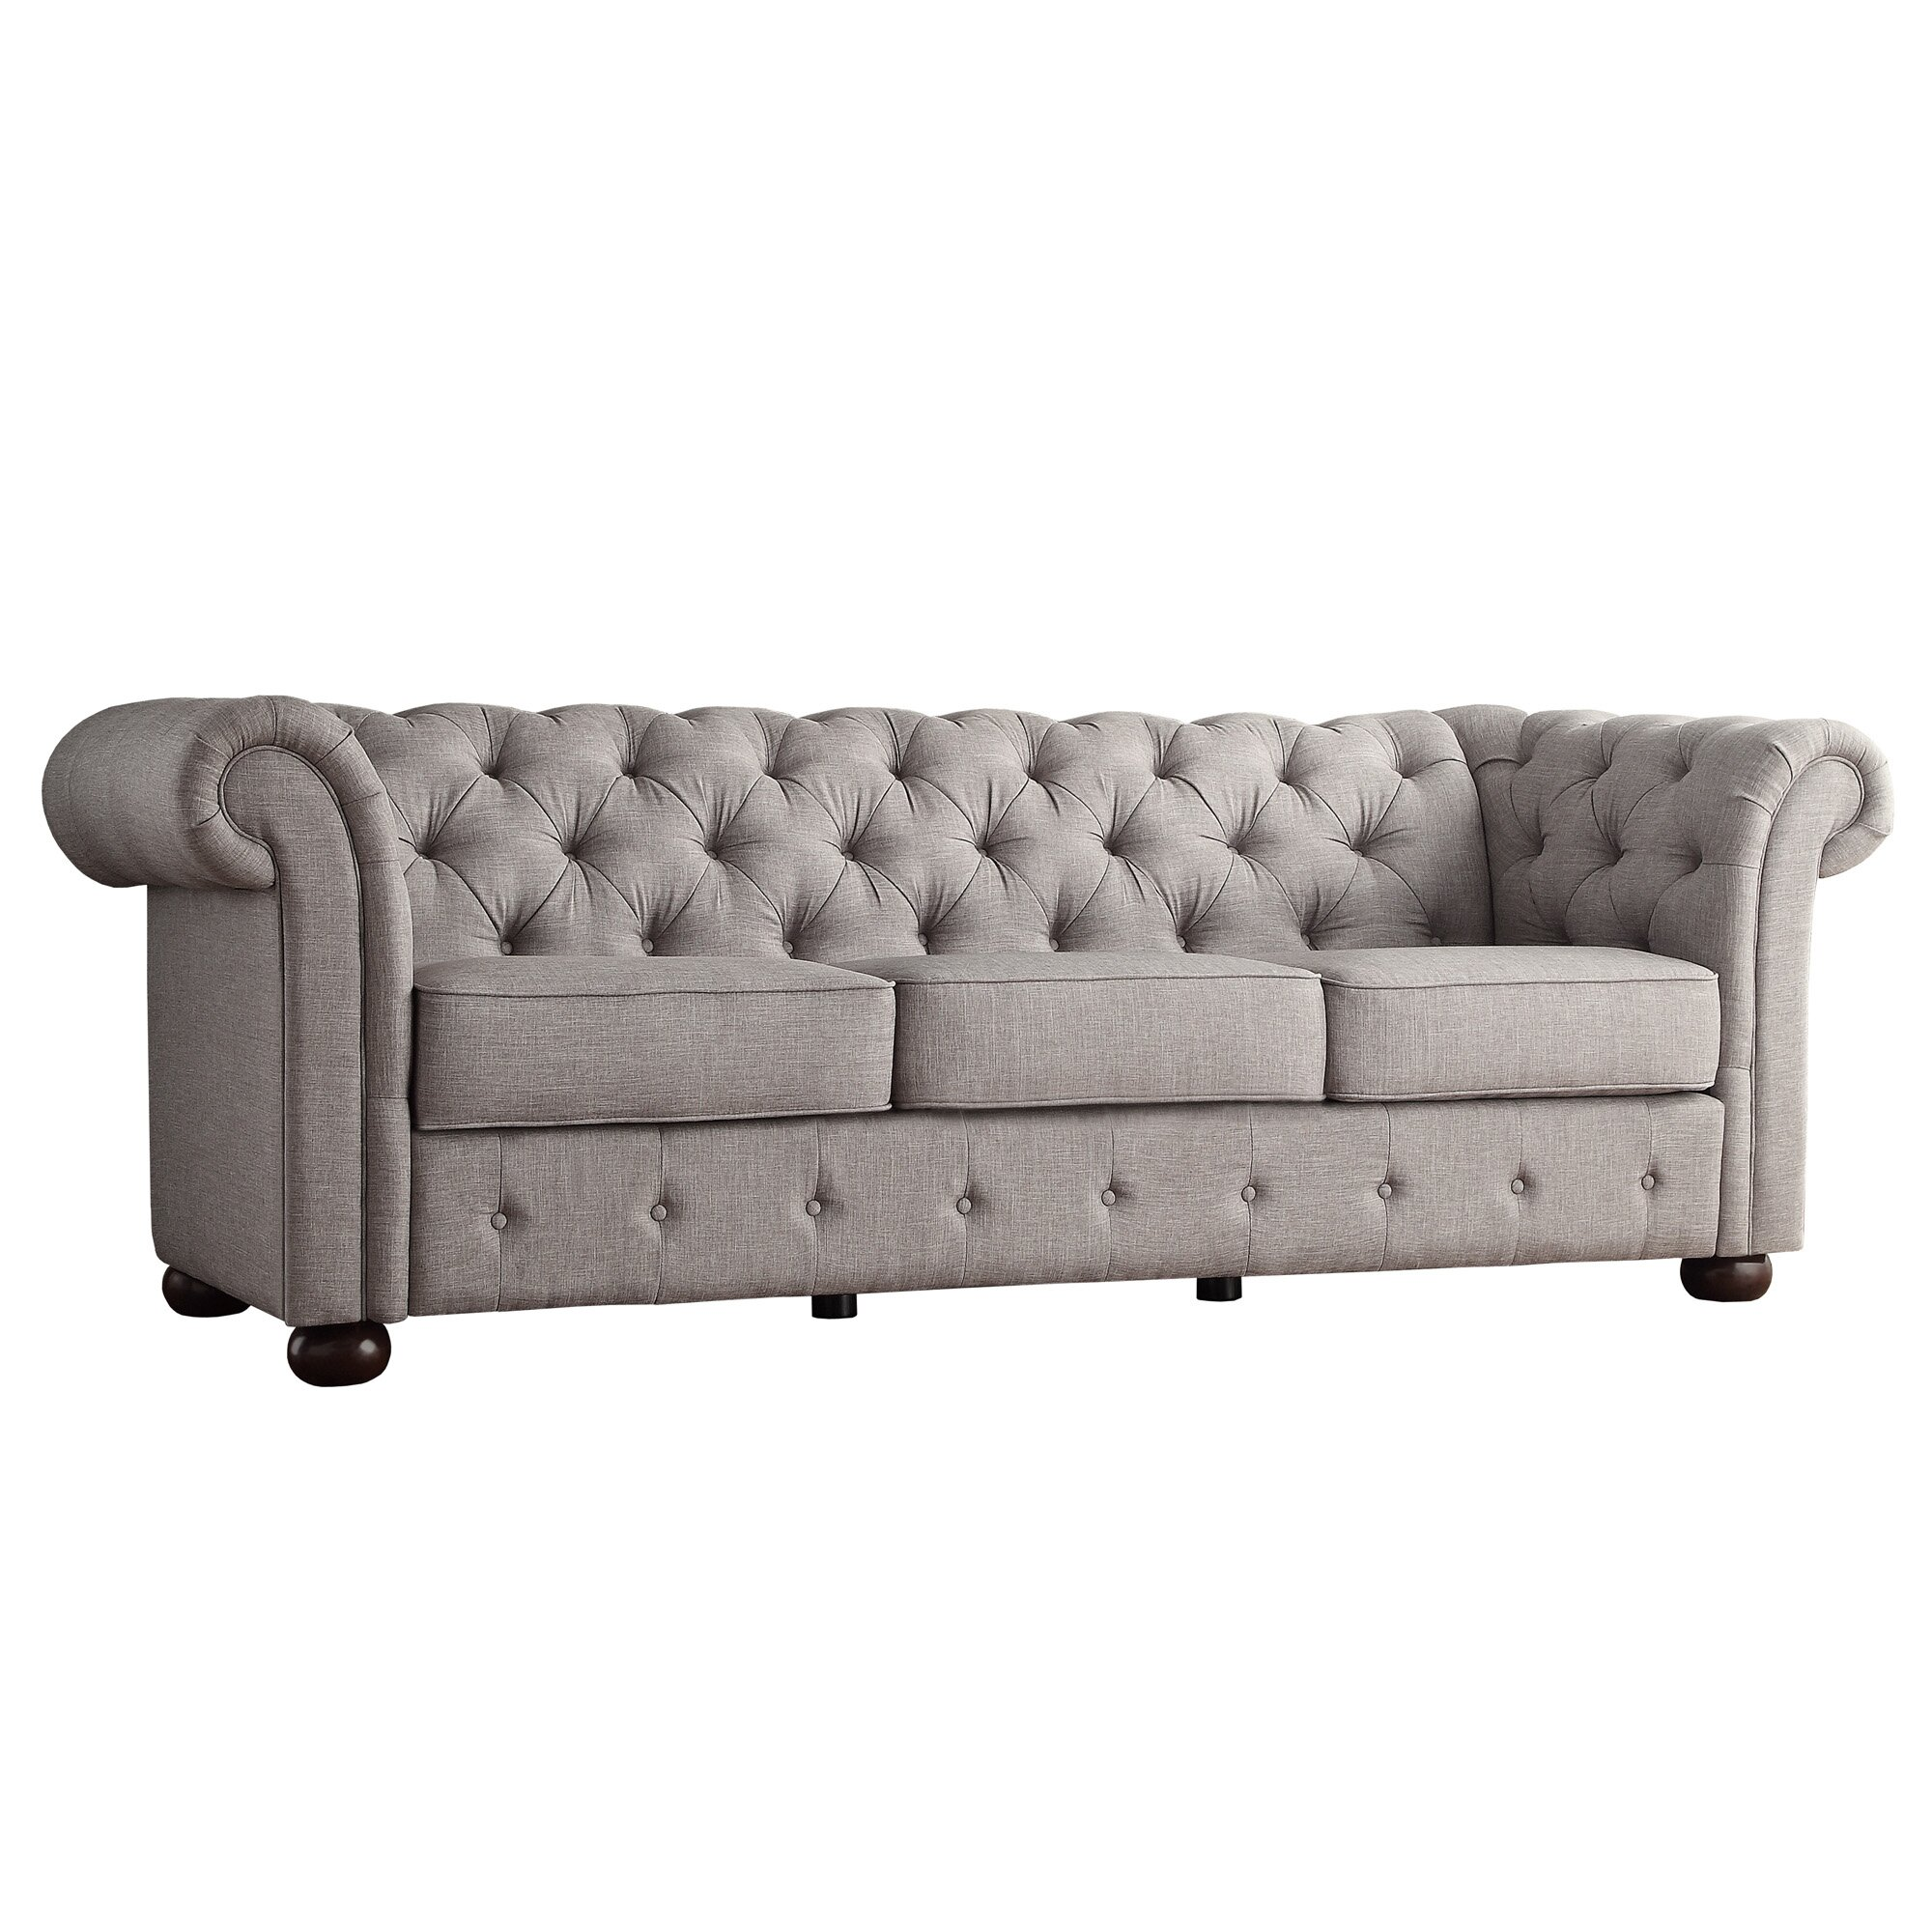 darby home co conners tufted sofa reviews wayfair. Black Bedroom Furniture Sets. Home Design Ideas